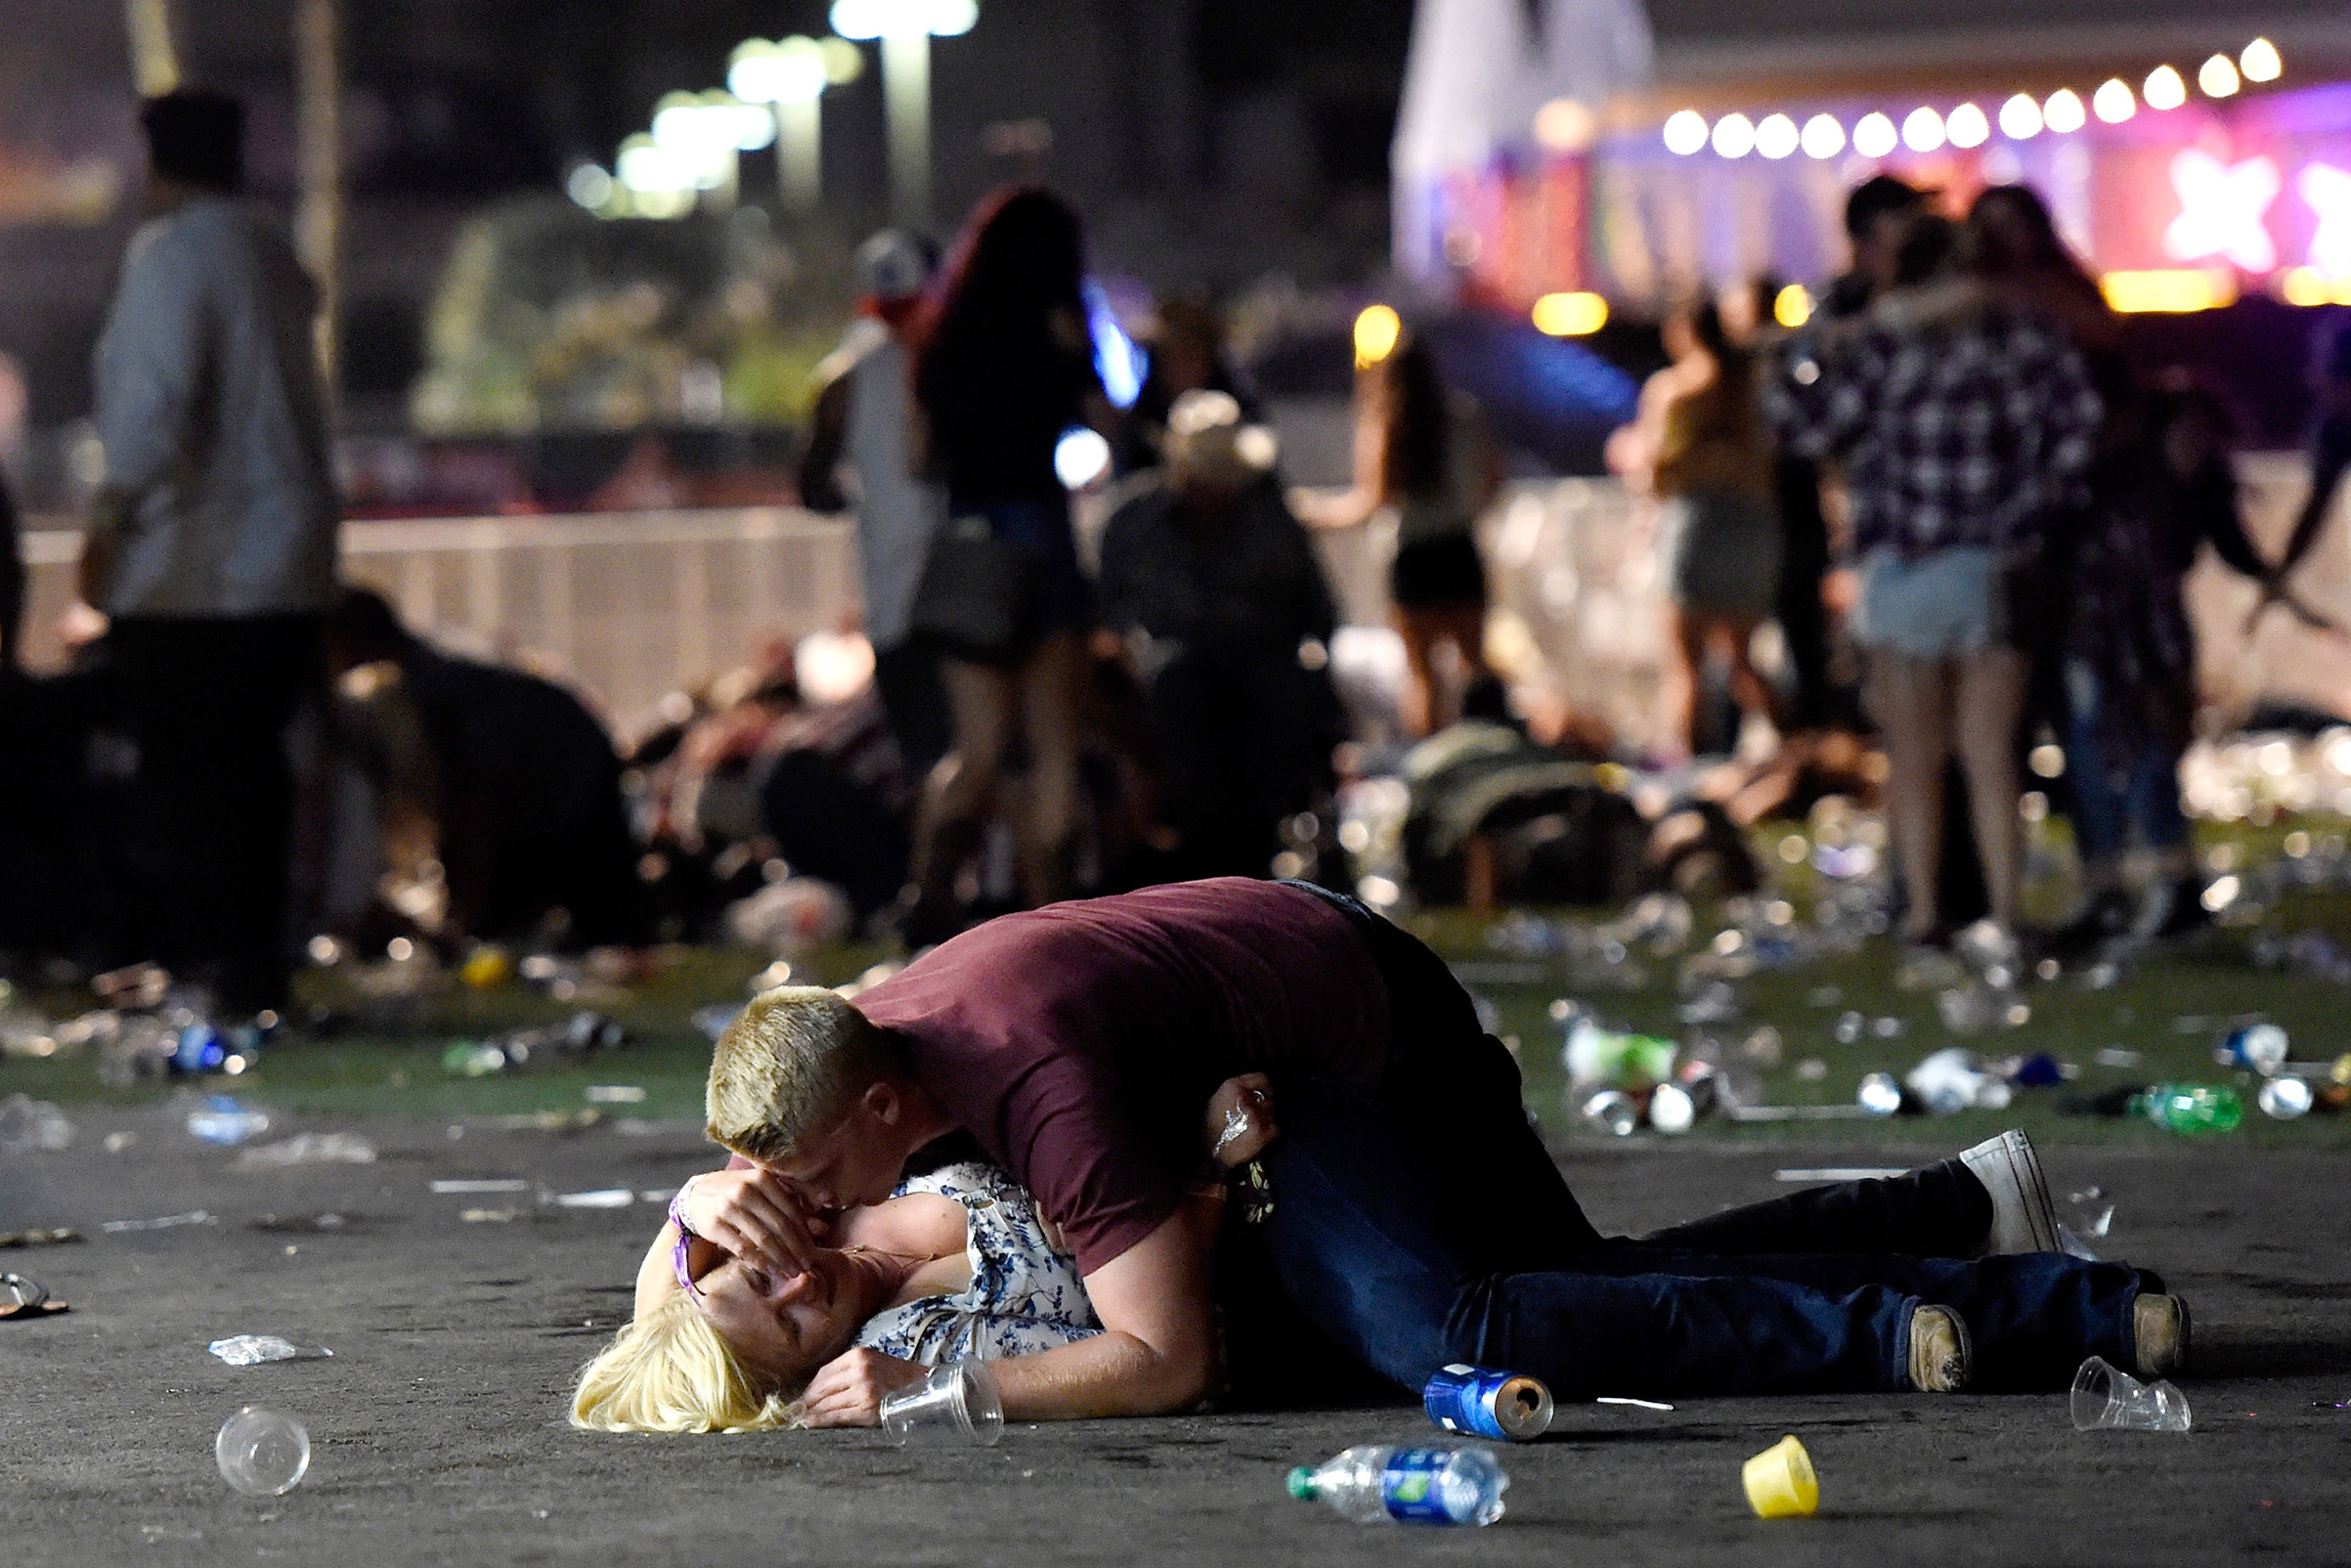 A man lays on top of a woman as others flee the Route 91 Harvest country music festival grounds after a active shooter was reported at Mandalay Bay on Oct. 1, 2017 in Las Vegas.